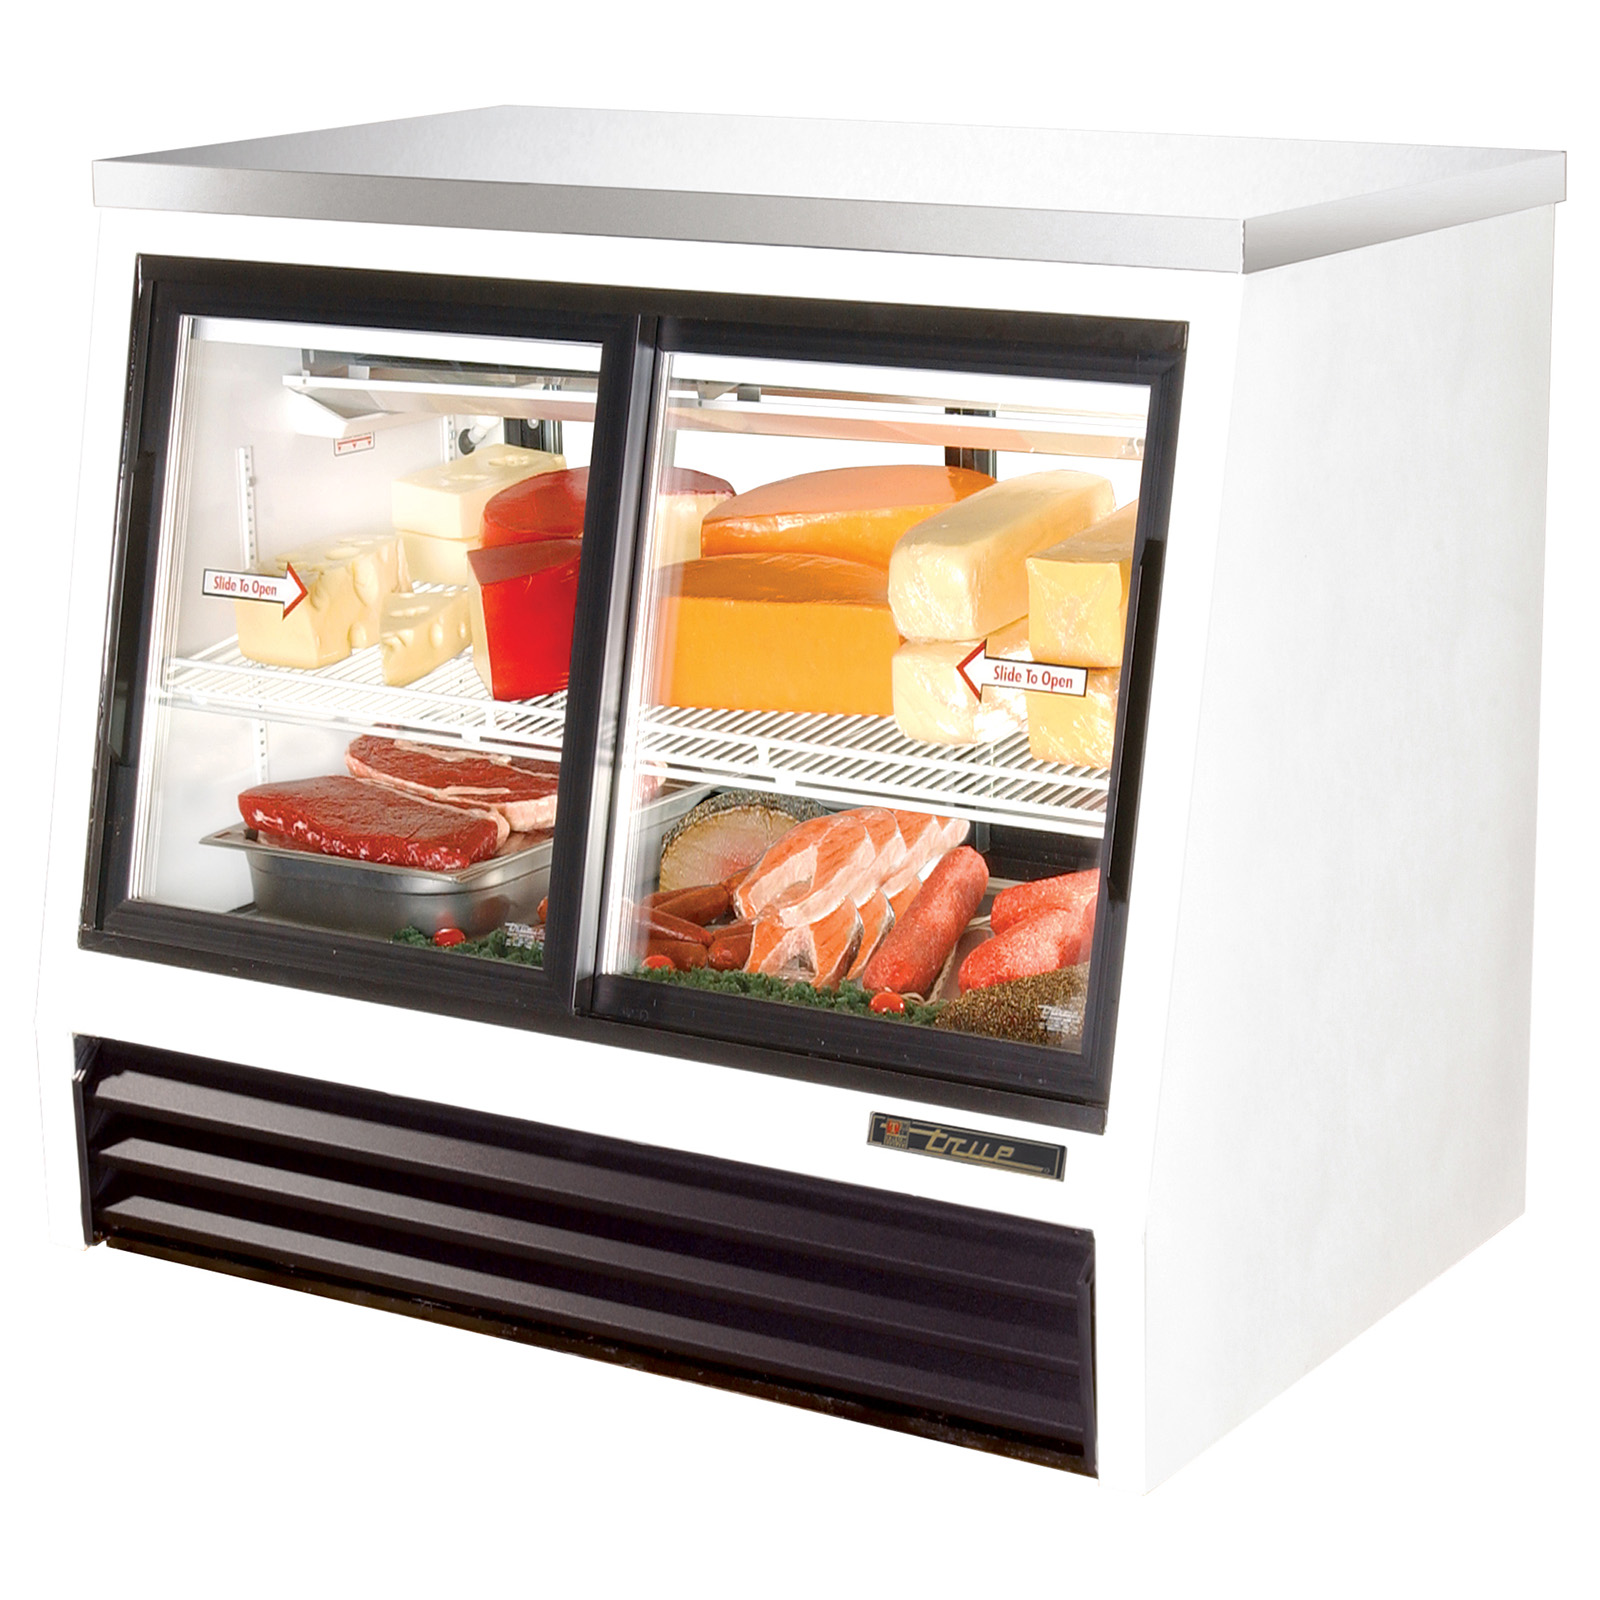 TSID-48-4-L True - Counter-Height Deli Case Pass-thru